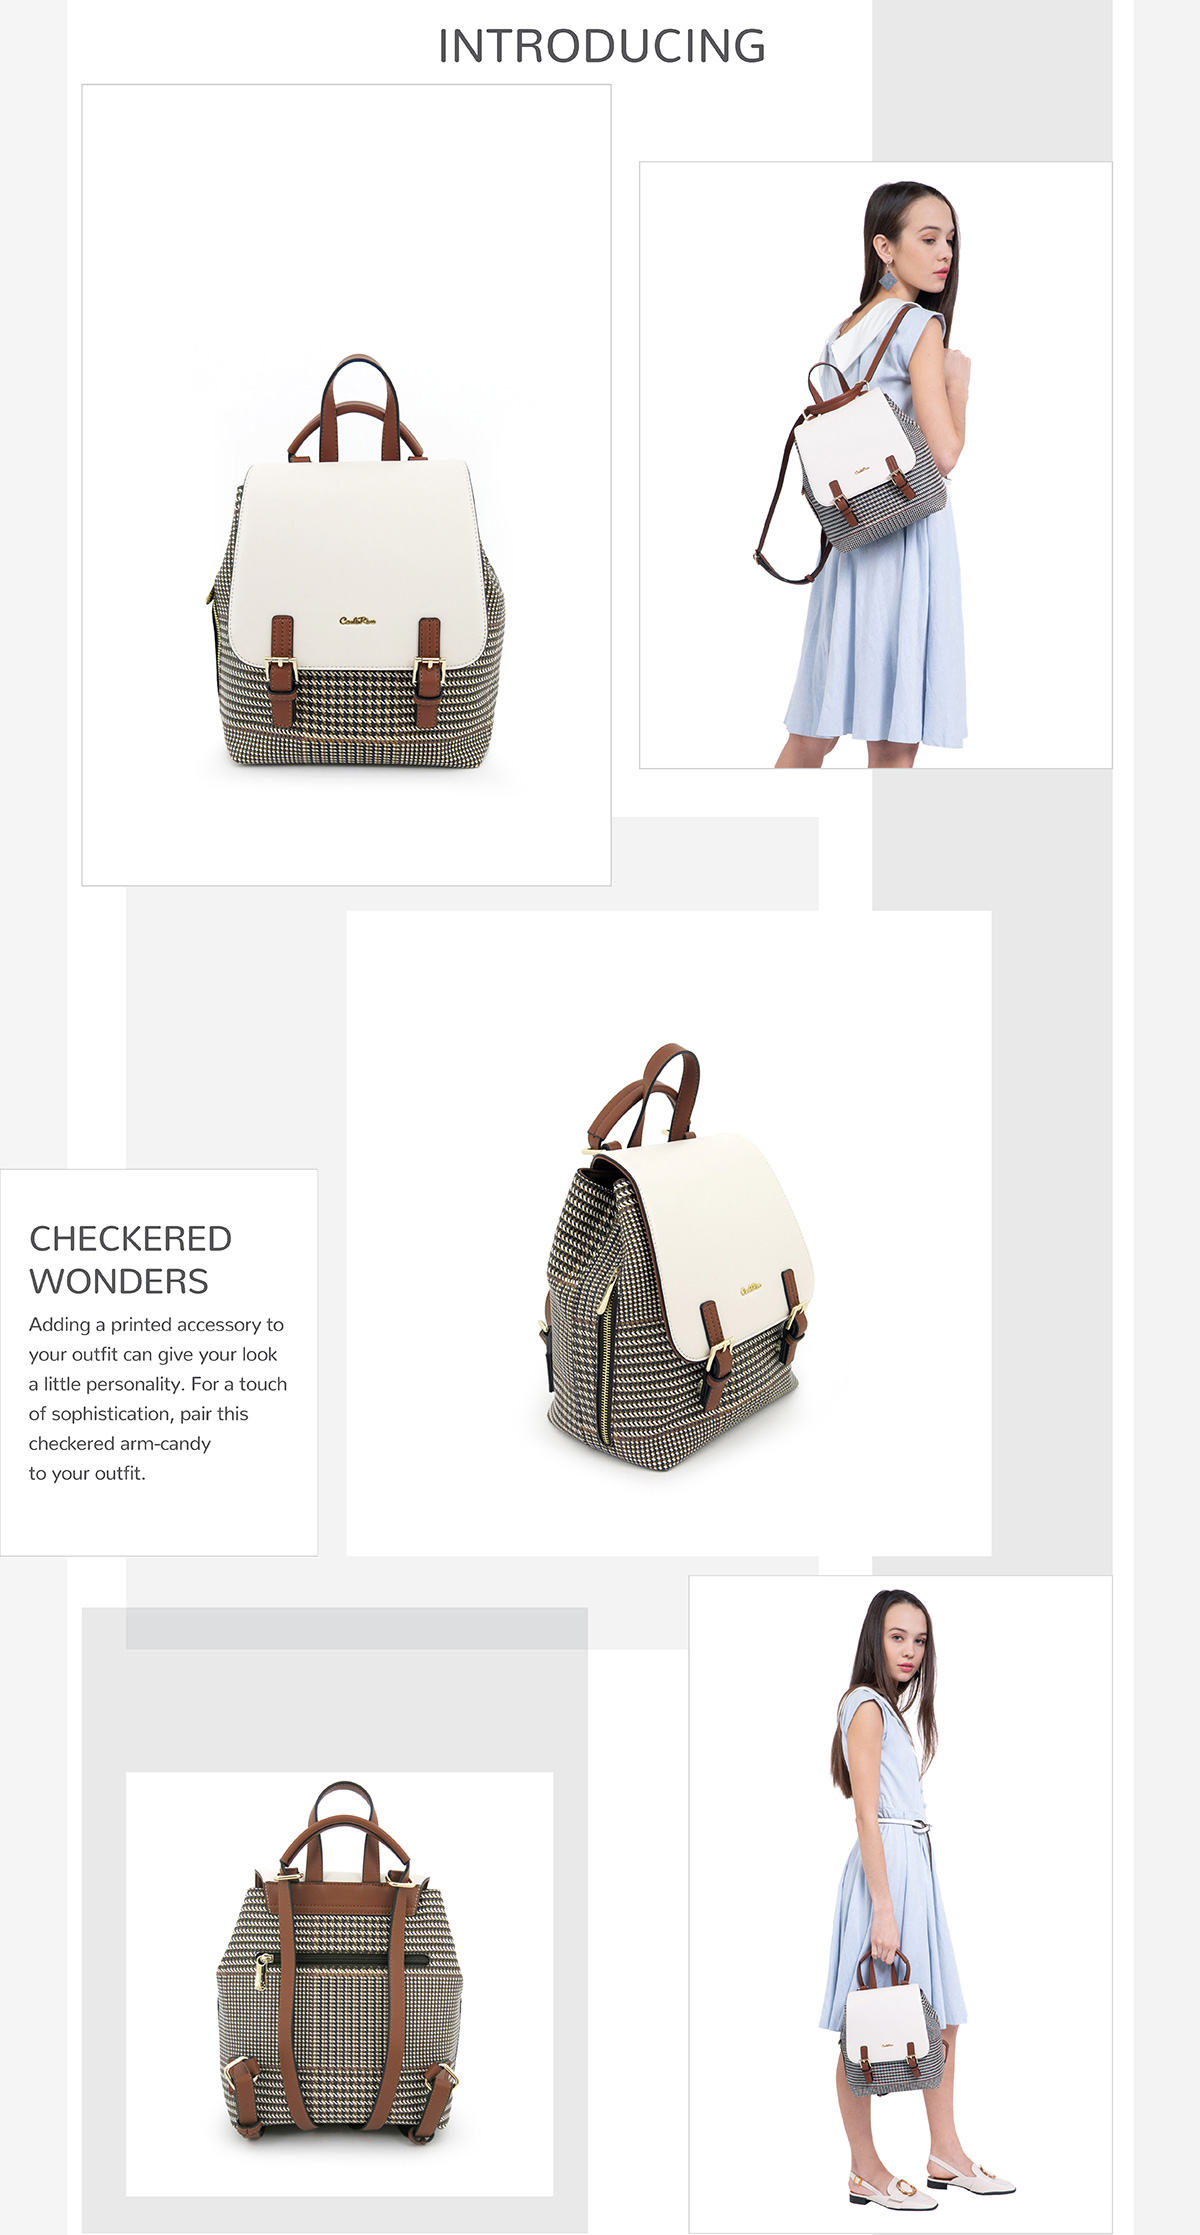 0304488C 004 21 - Oxford Houndstooth Print Backpack